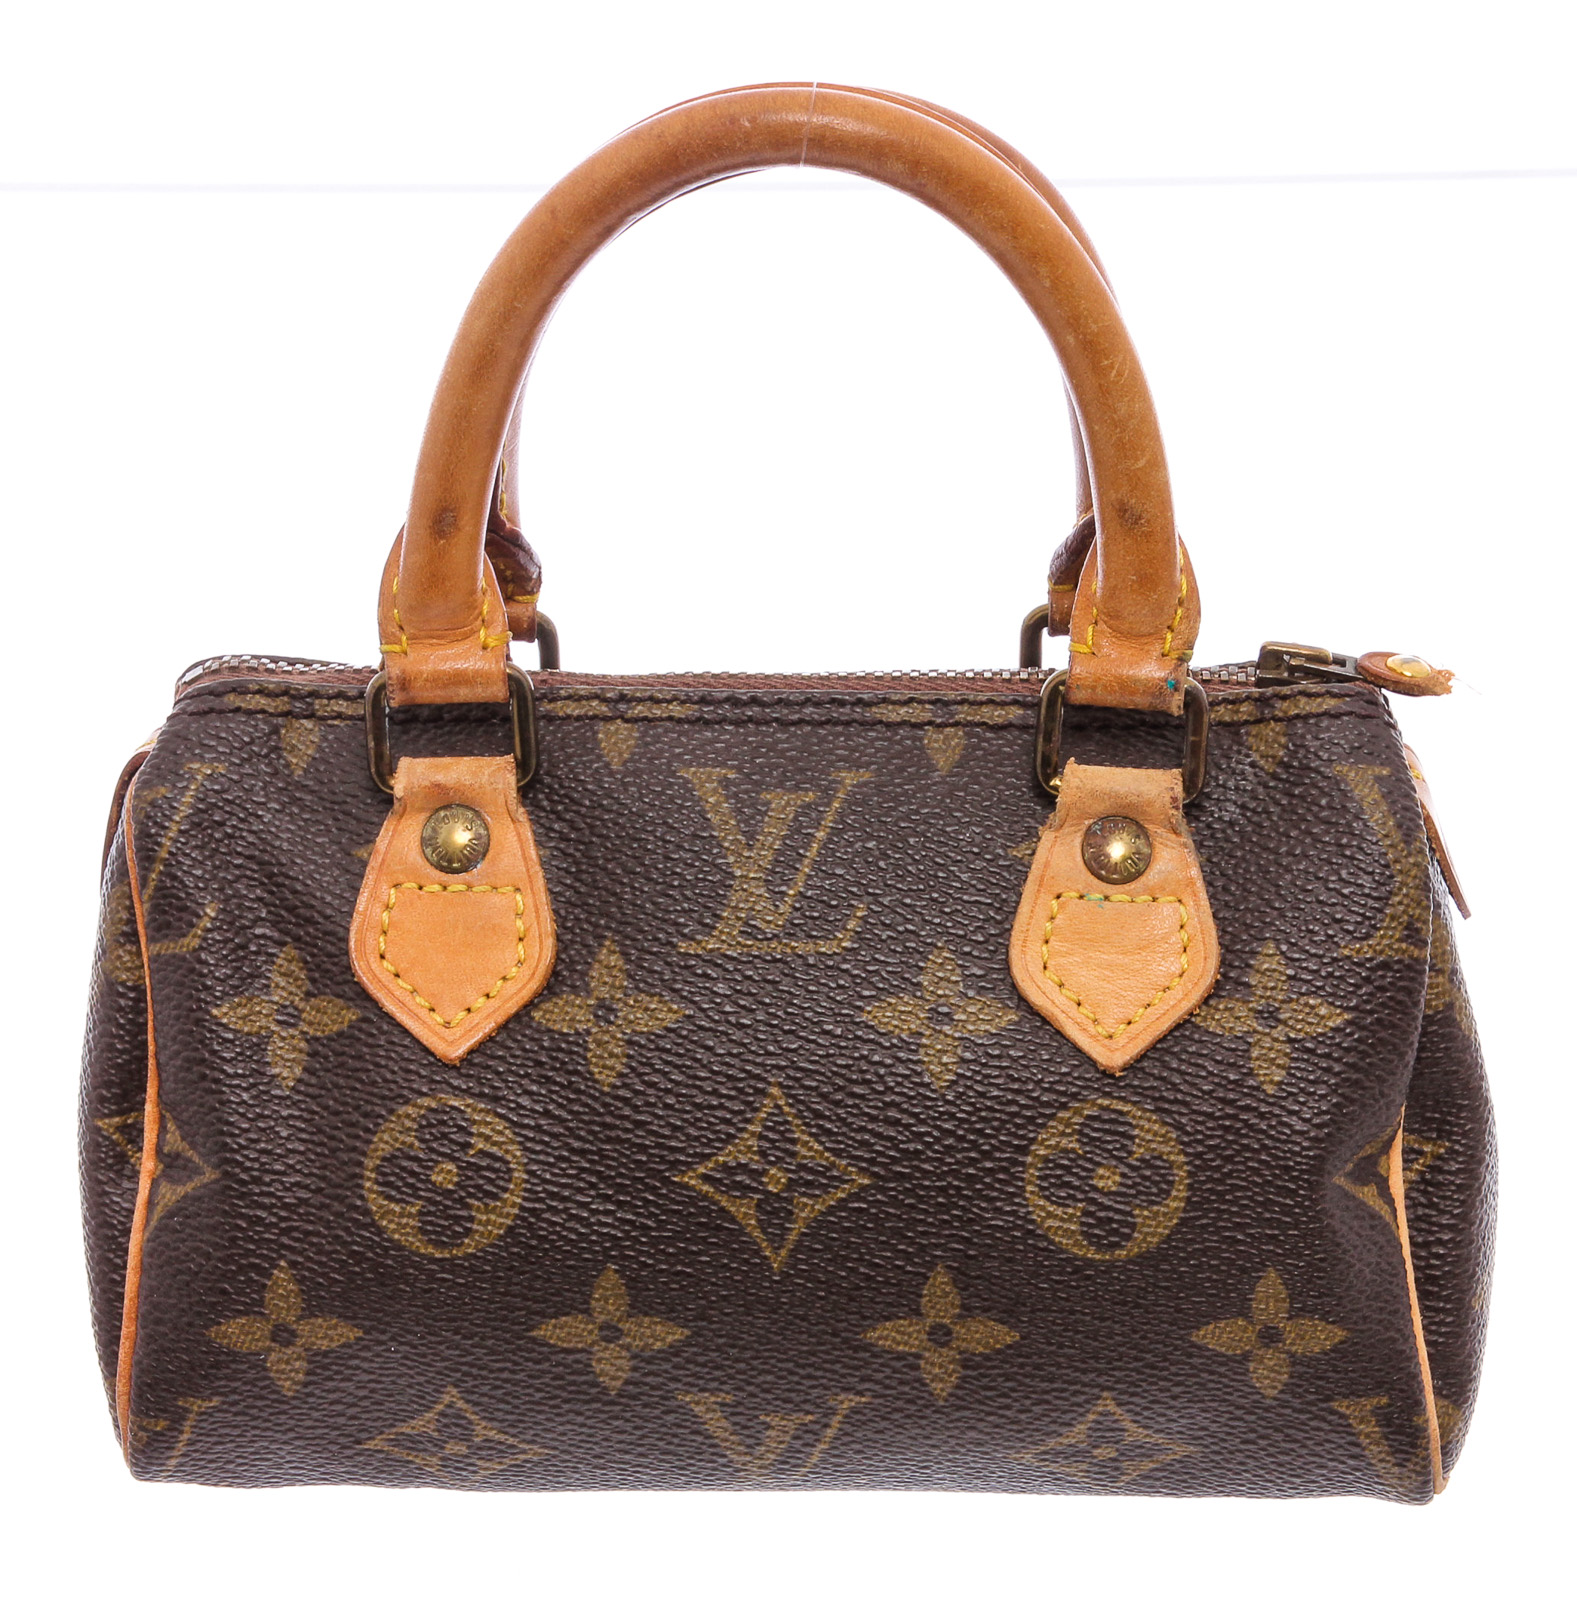 Louis Vuitton Mini Monogram Speedy Marque Luxury .jpg